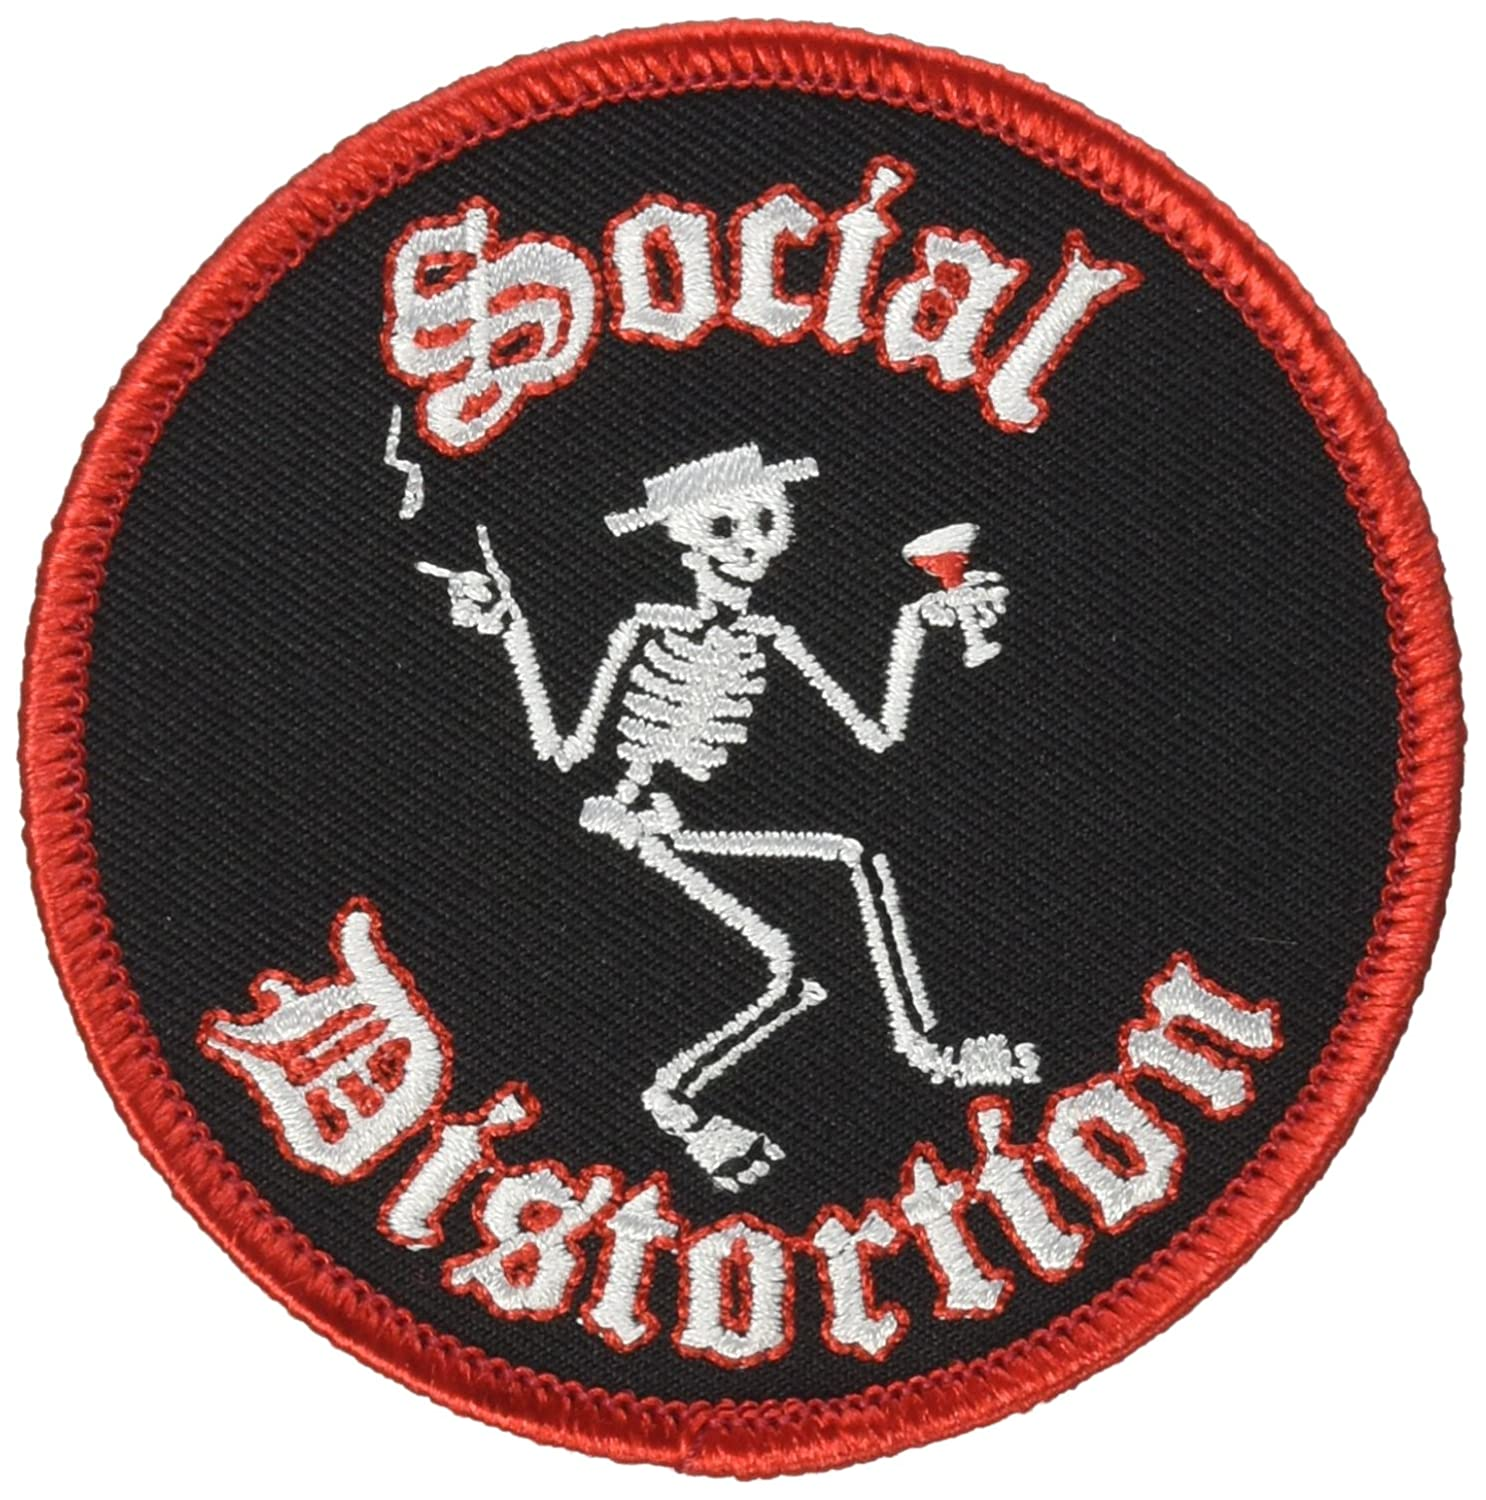 SOCIAL DISTORTION Skeleton PATCH, Officially Licensed Products Classic Rock Artwork, Iron-On / Sew-On, 3